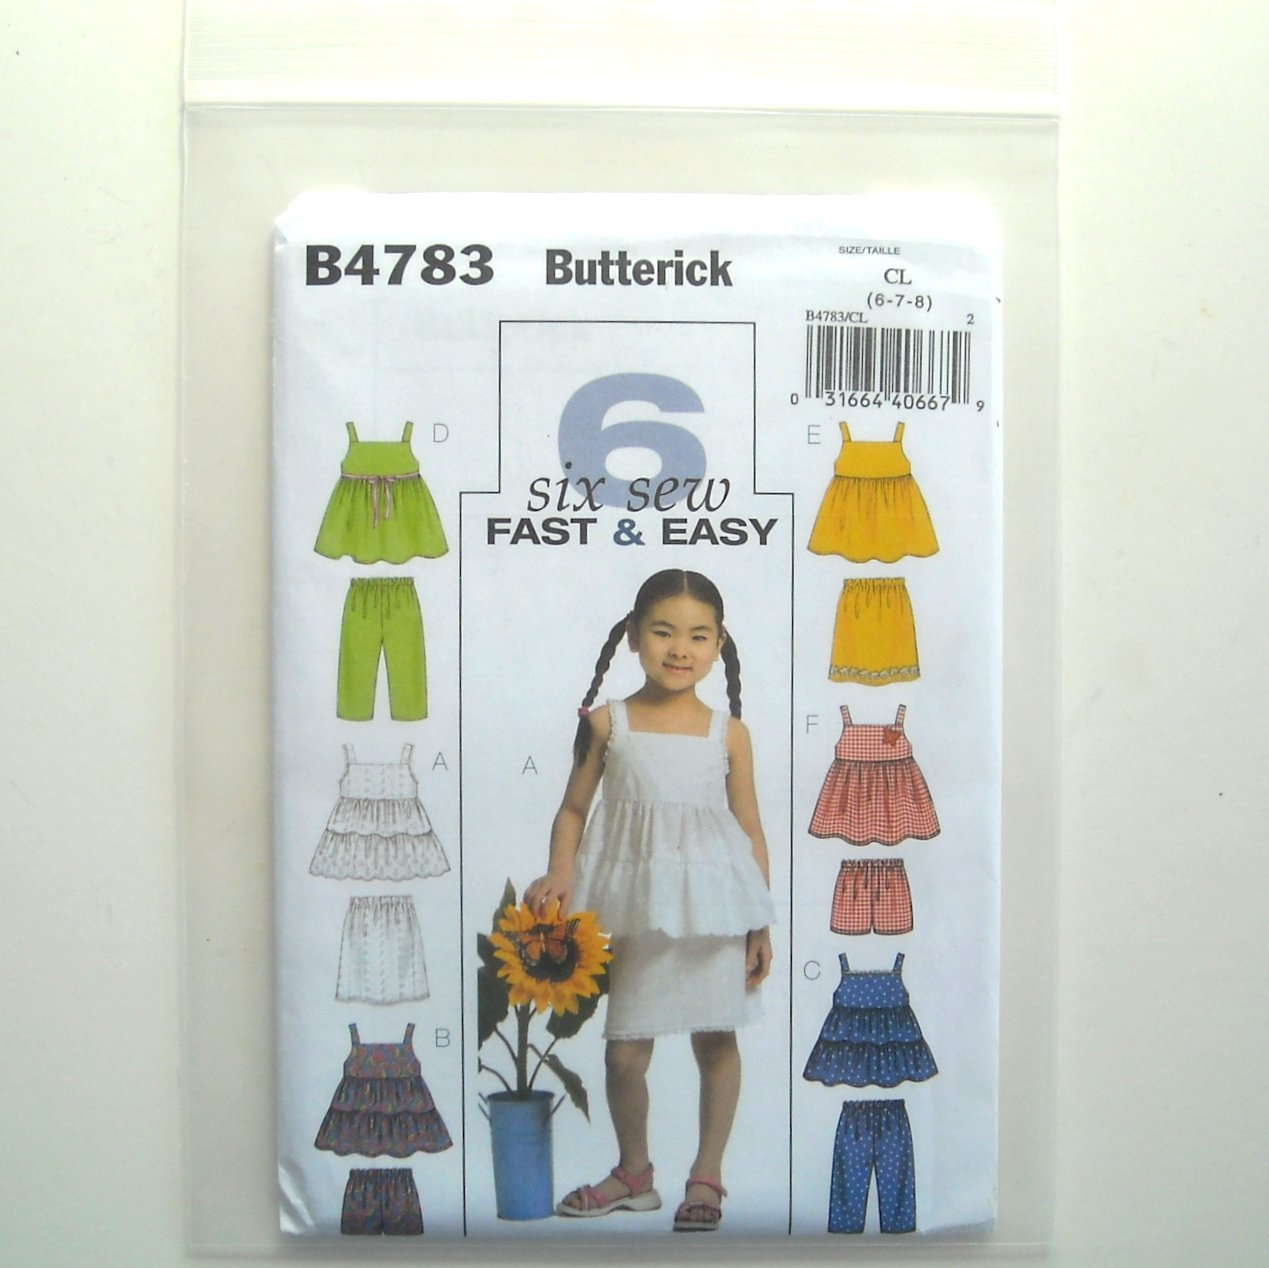 Butterick Pattern B4783 Out of Print Size 6 - 8 6 Fast Easy Girls Top Skirt Shorts Pants